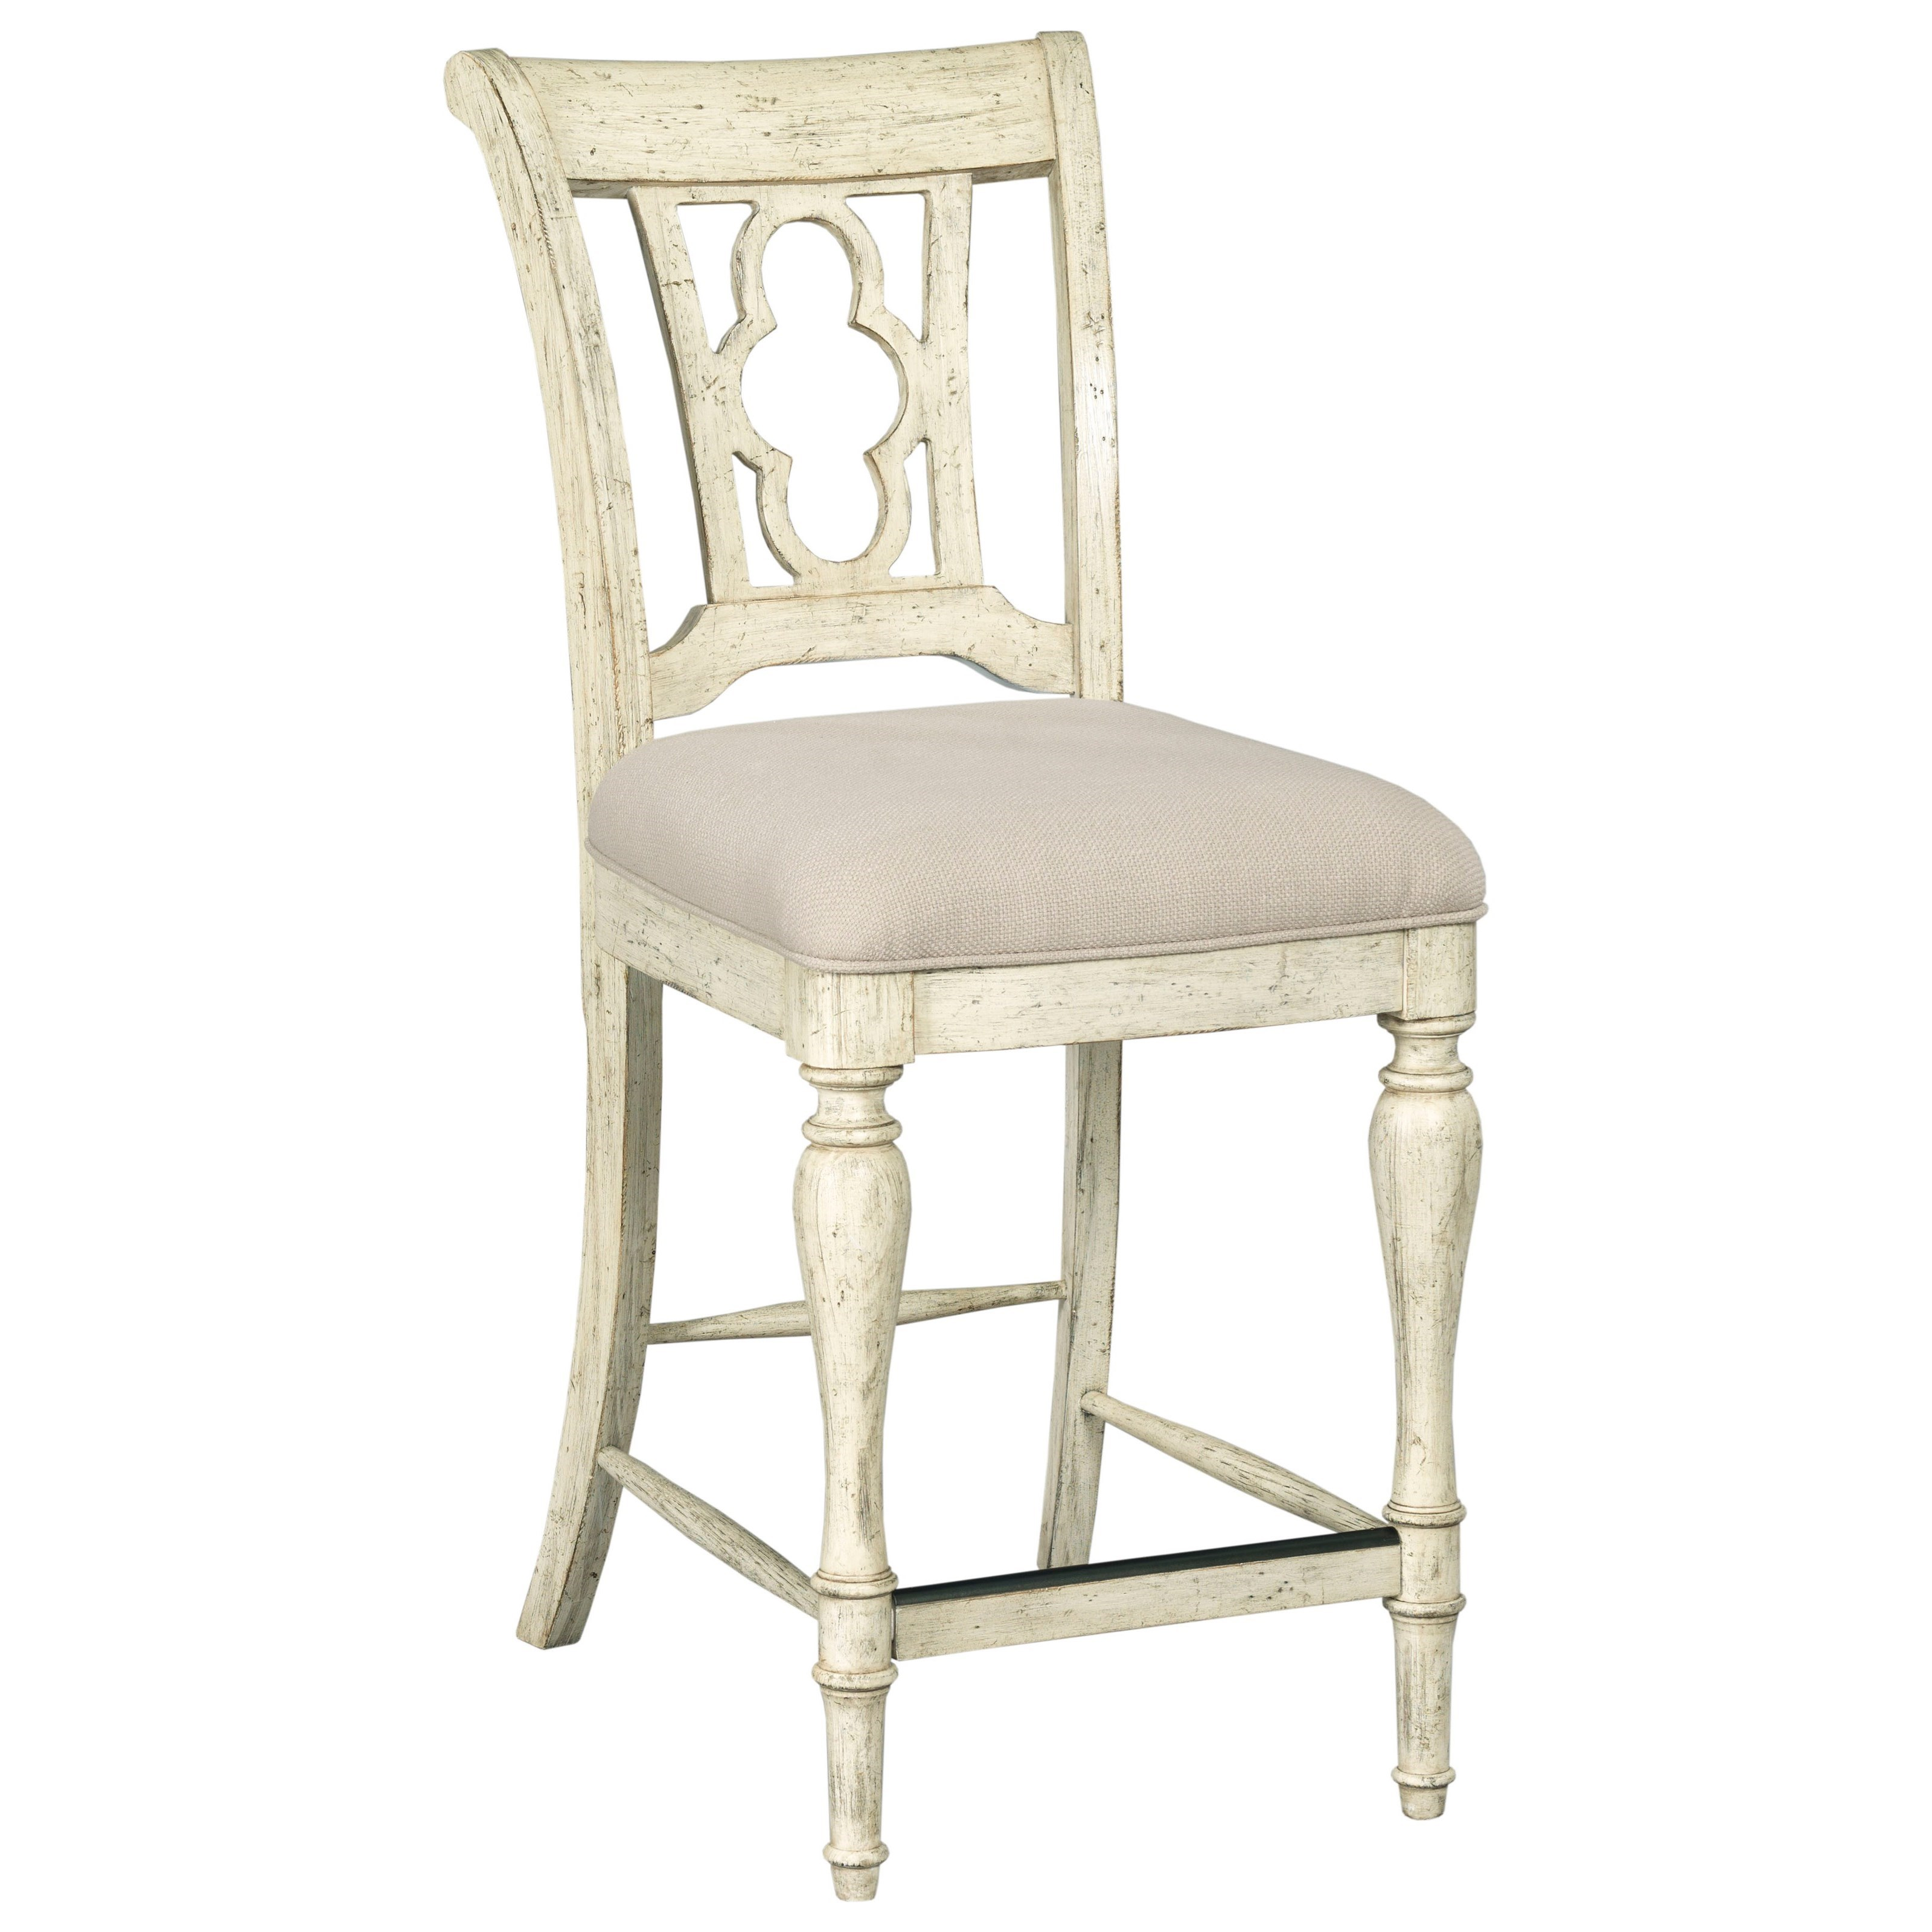 Weatherford Kendal Counter Height Side Chair             at Stoney Creek Furniture